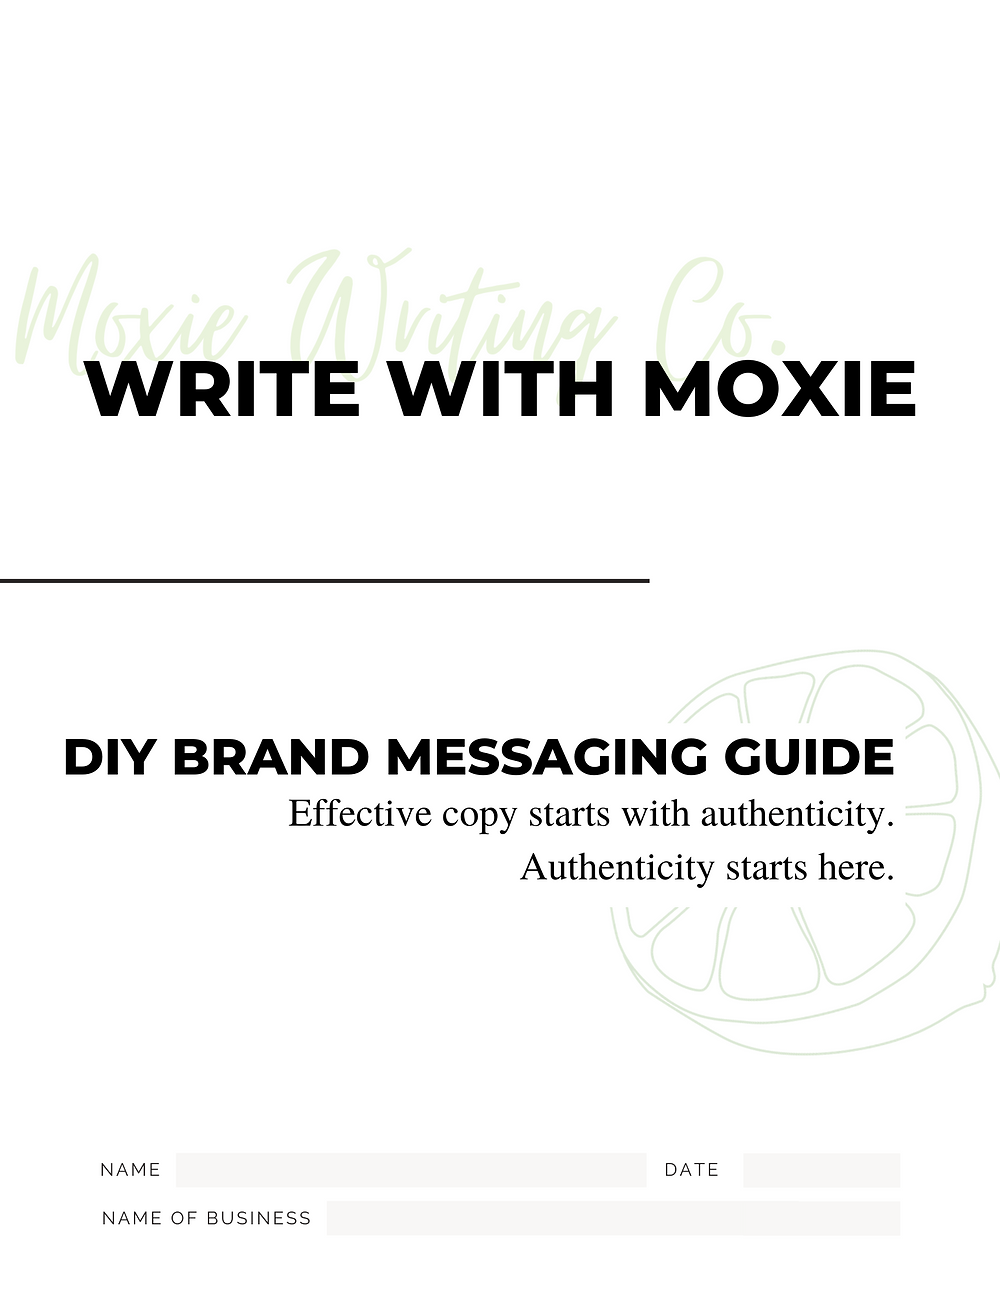 Cover of the Write With Moxie DIY Brand Messaging Guide